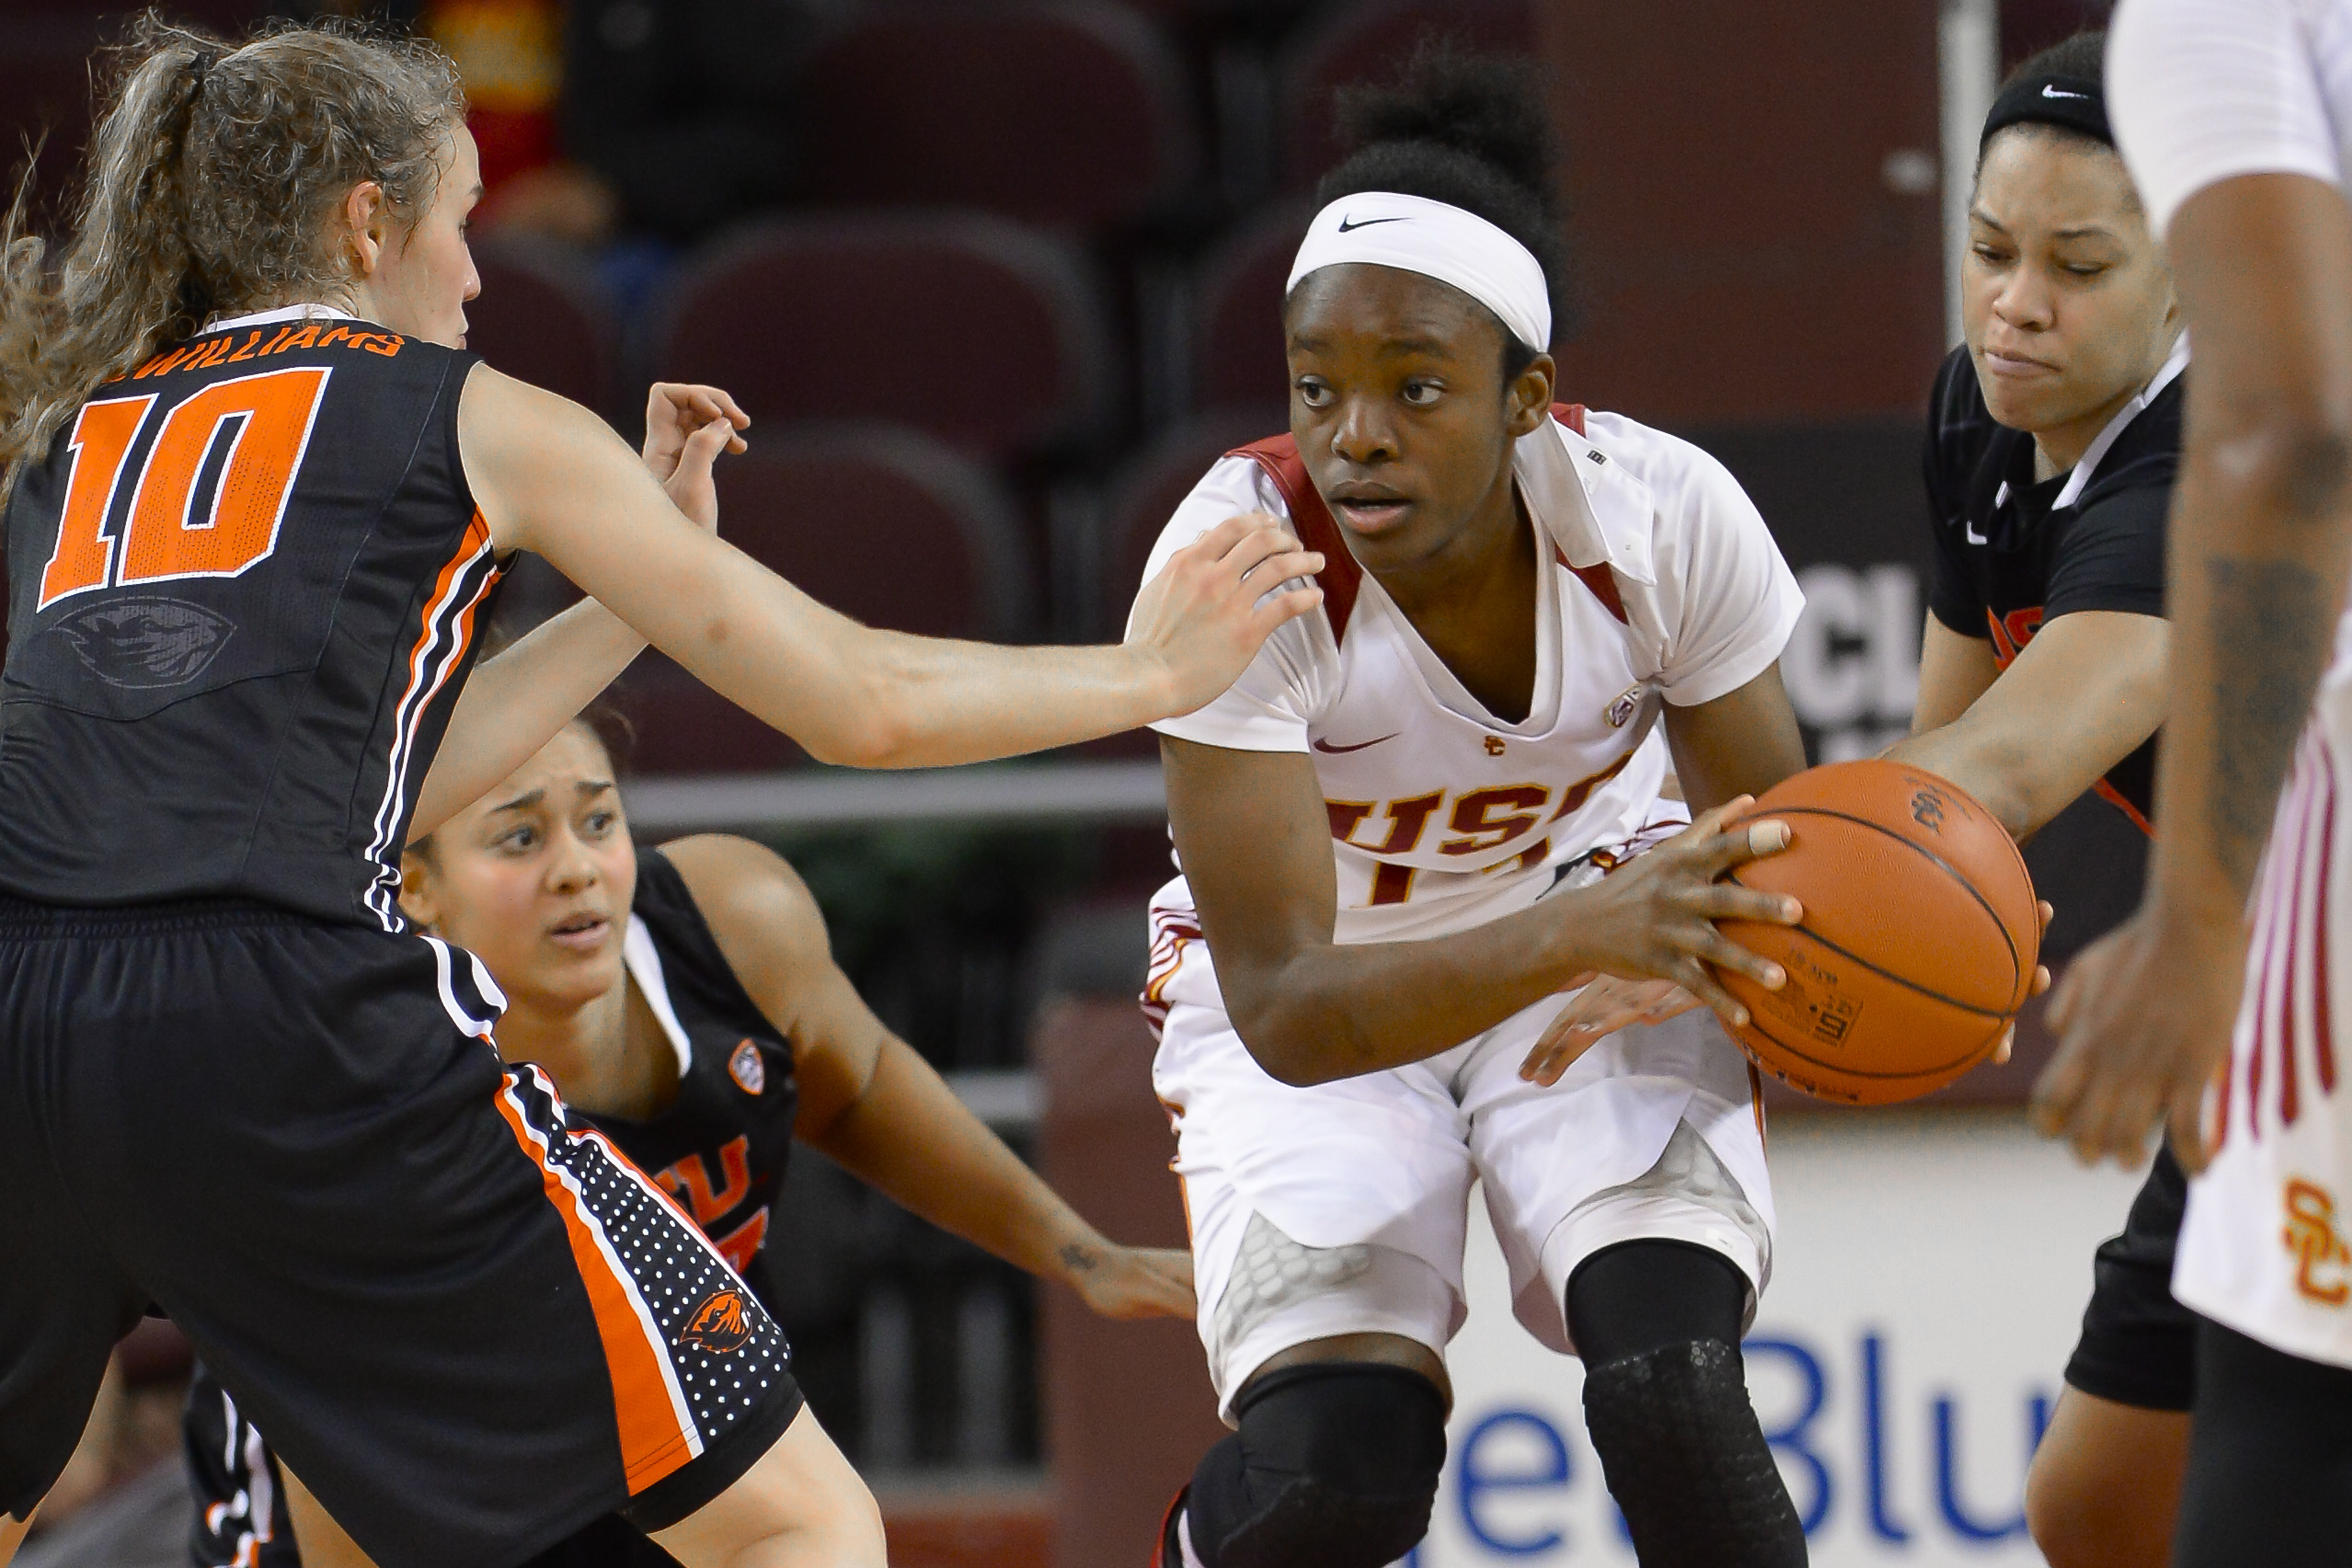 Southern California forward Marguerite Effa, center right, attempts to get by Oregon State guard Katie McWilliams (10) during the first half of an NCAA college basketball game Saturday, Jan. 2, 2016, in Los Angeles. (AP Photo/Gus Ruelas)